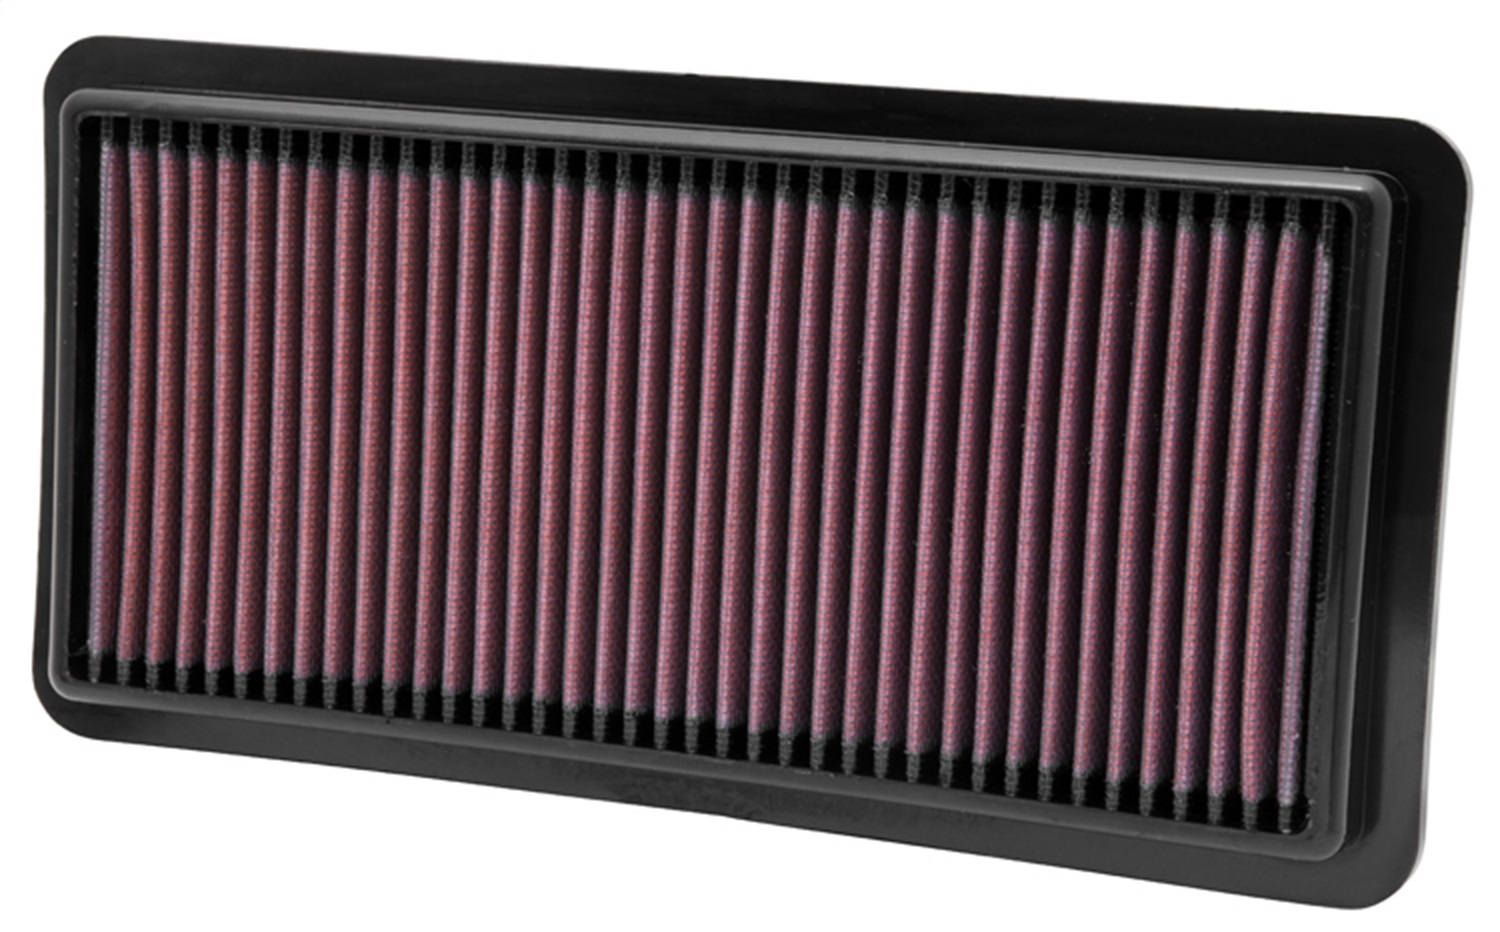 K&N Filters 33-2463 Air Filter Fits 10-13 SX4 SX4 Crossover 33-2463